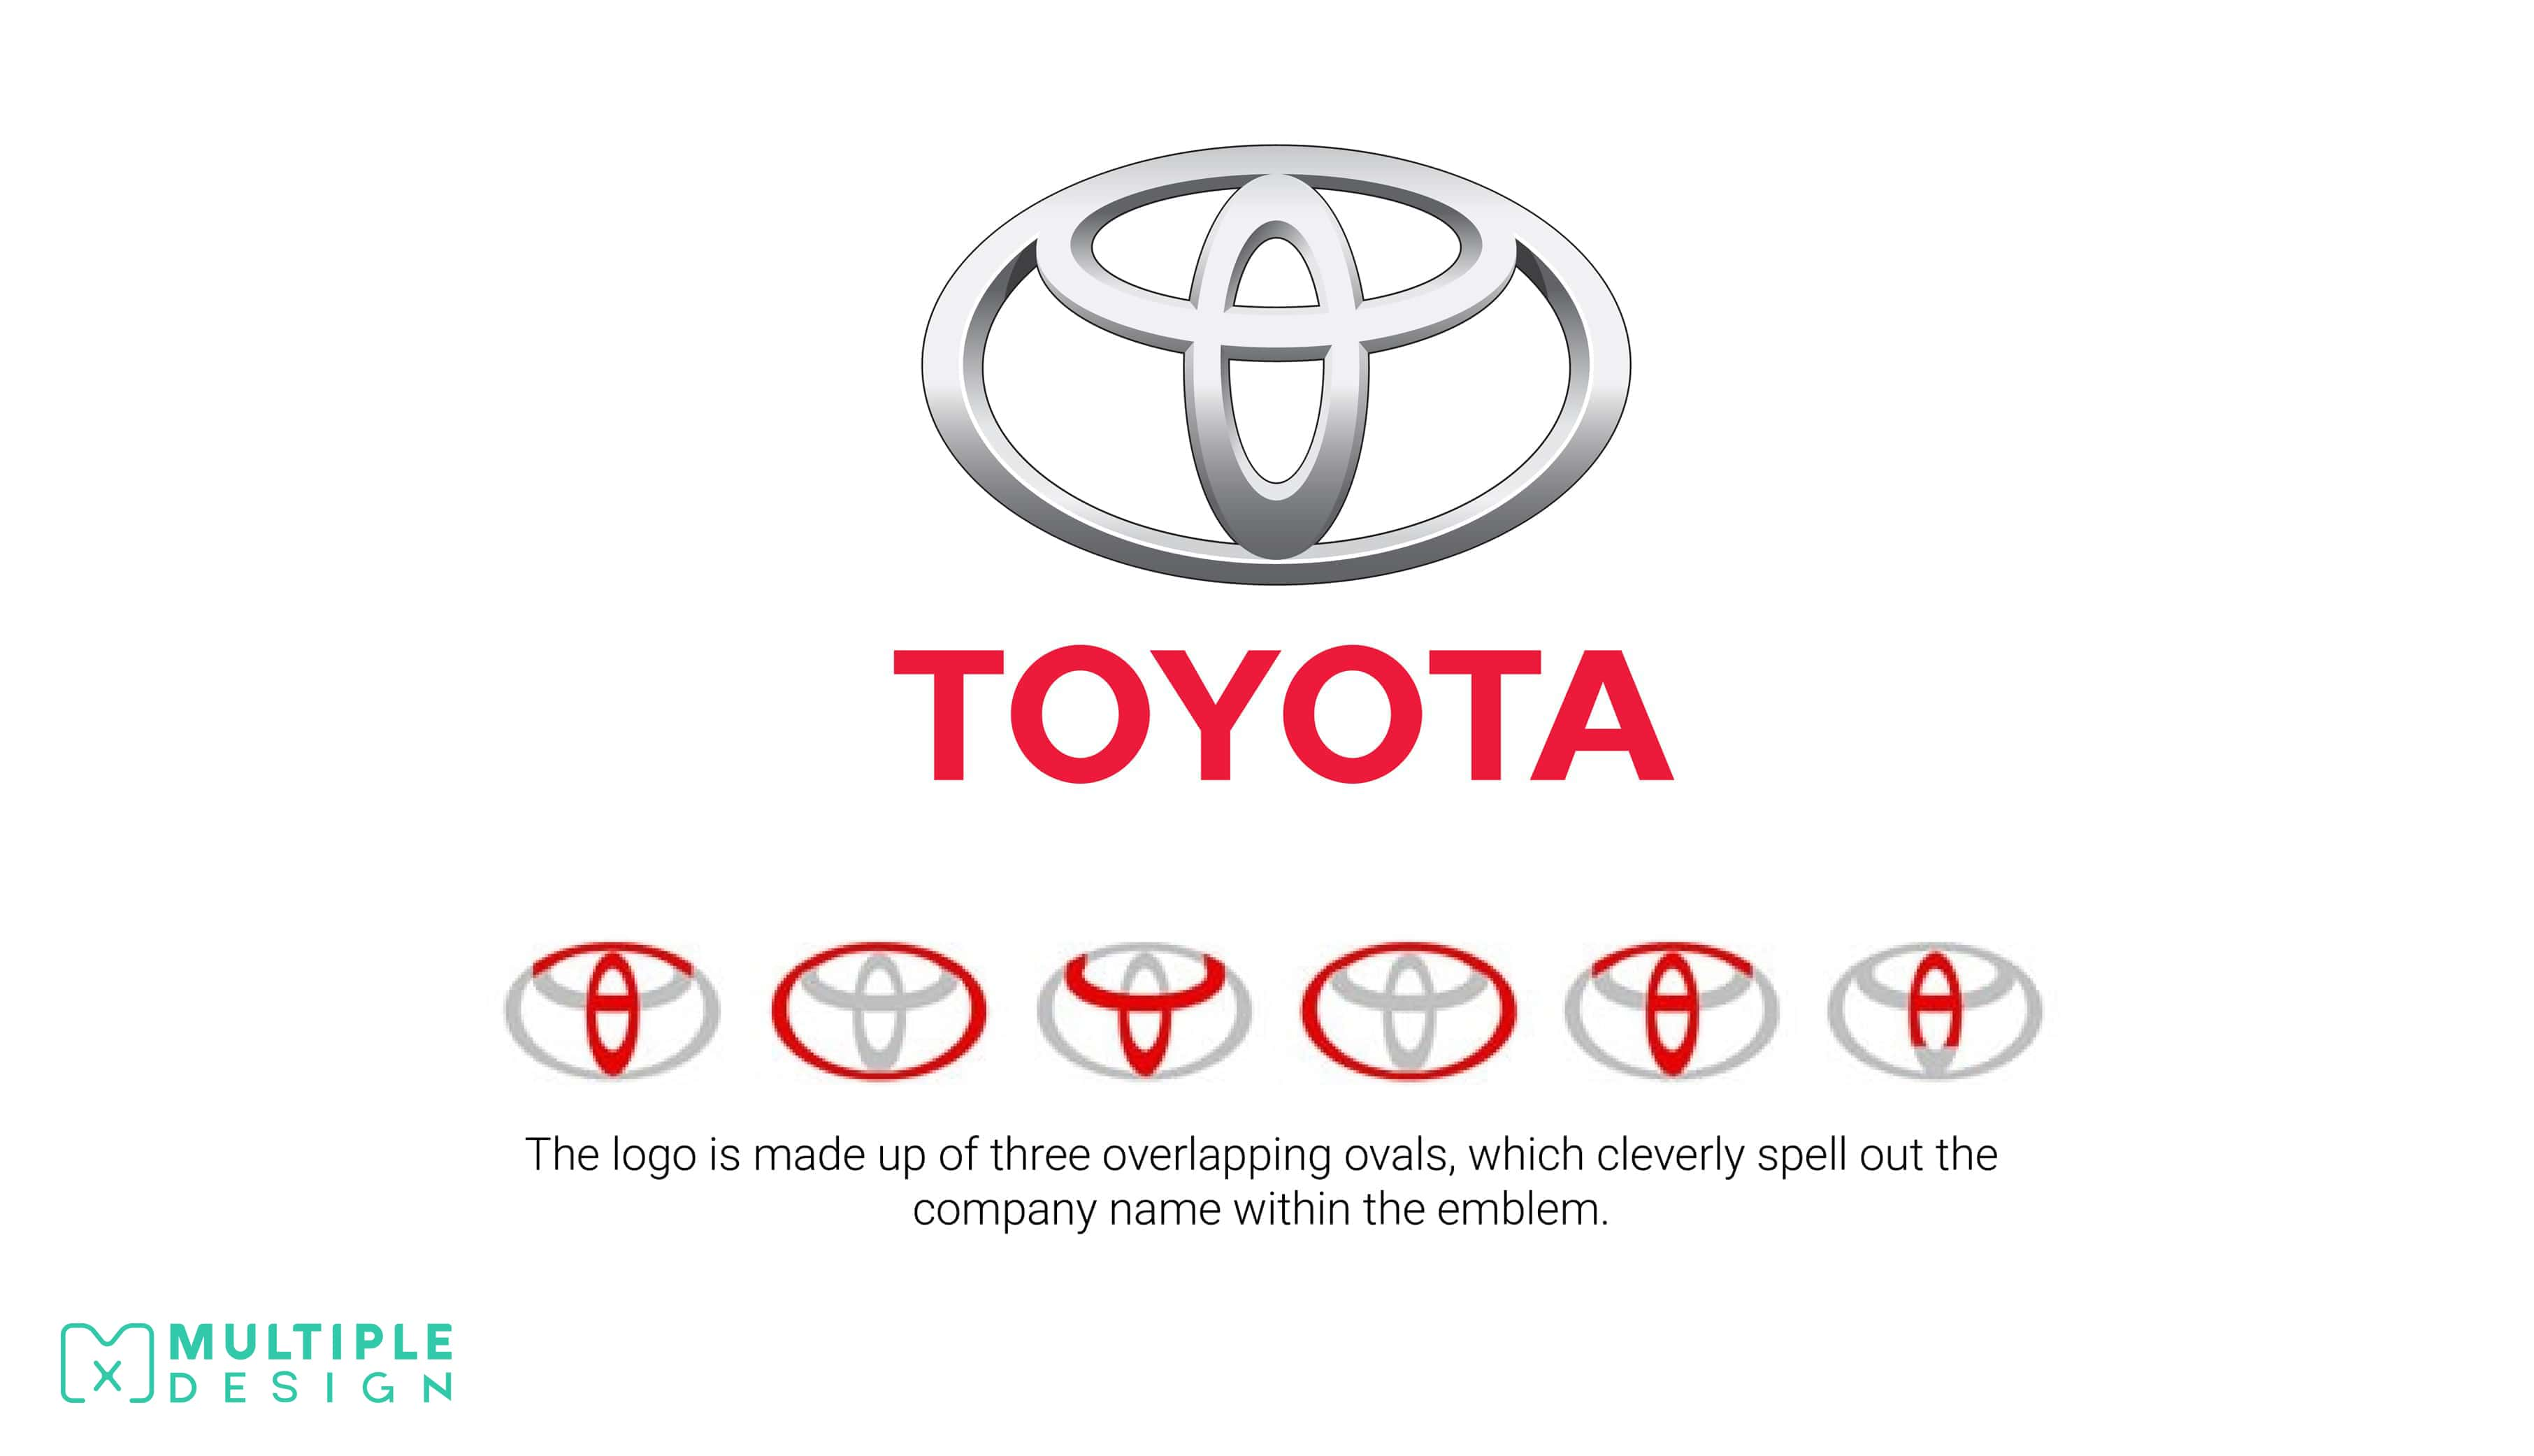 Toyota logo, spells out name